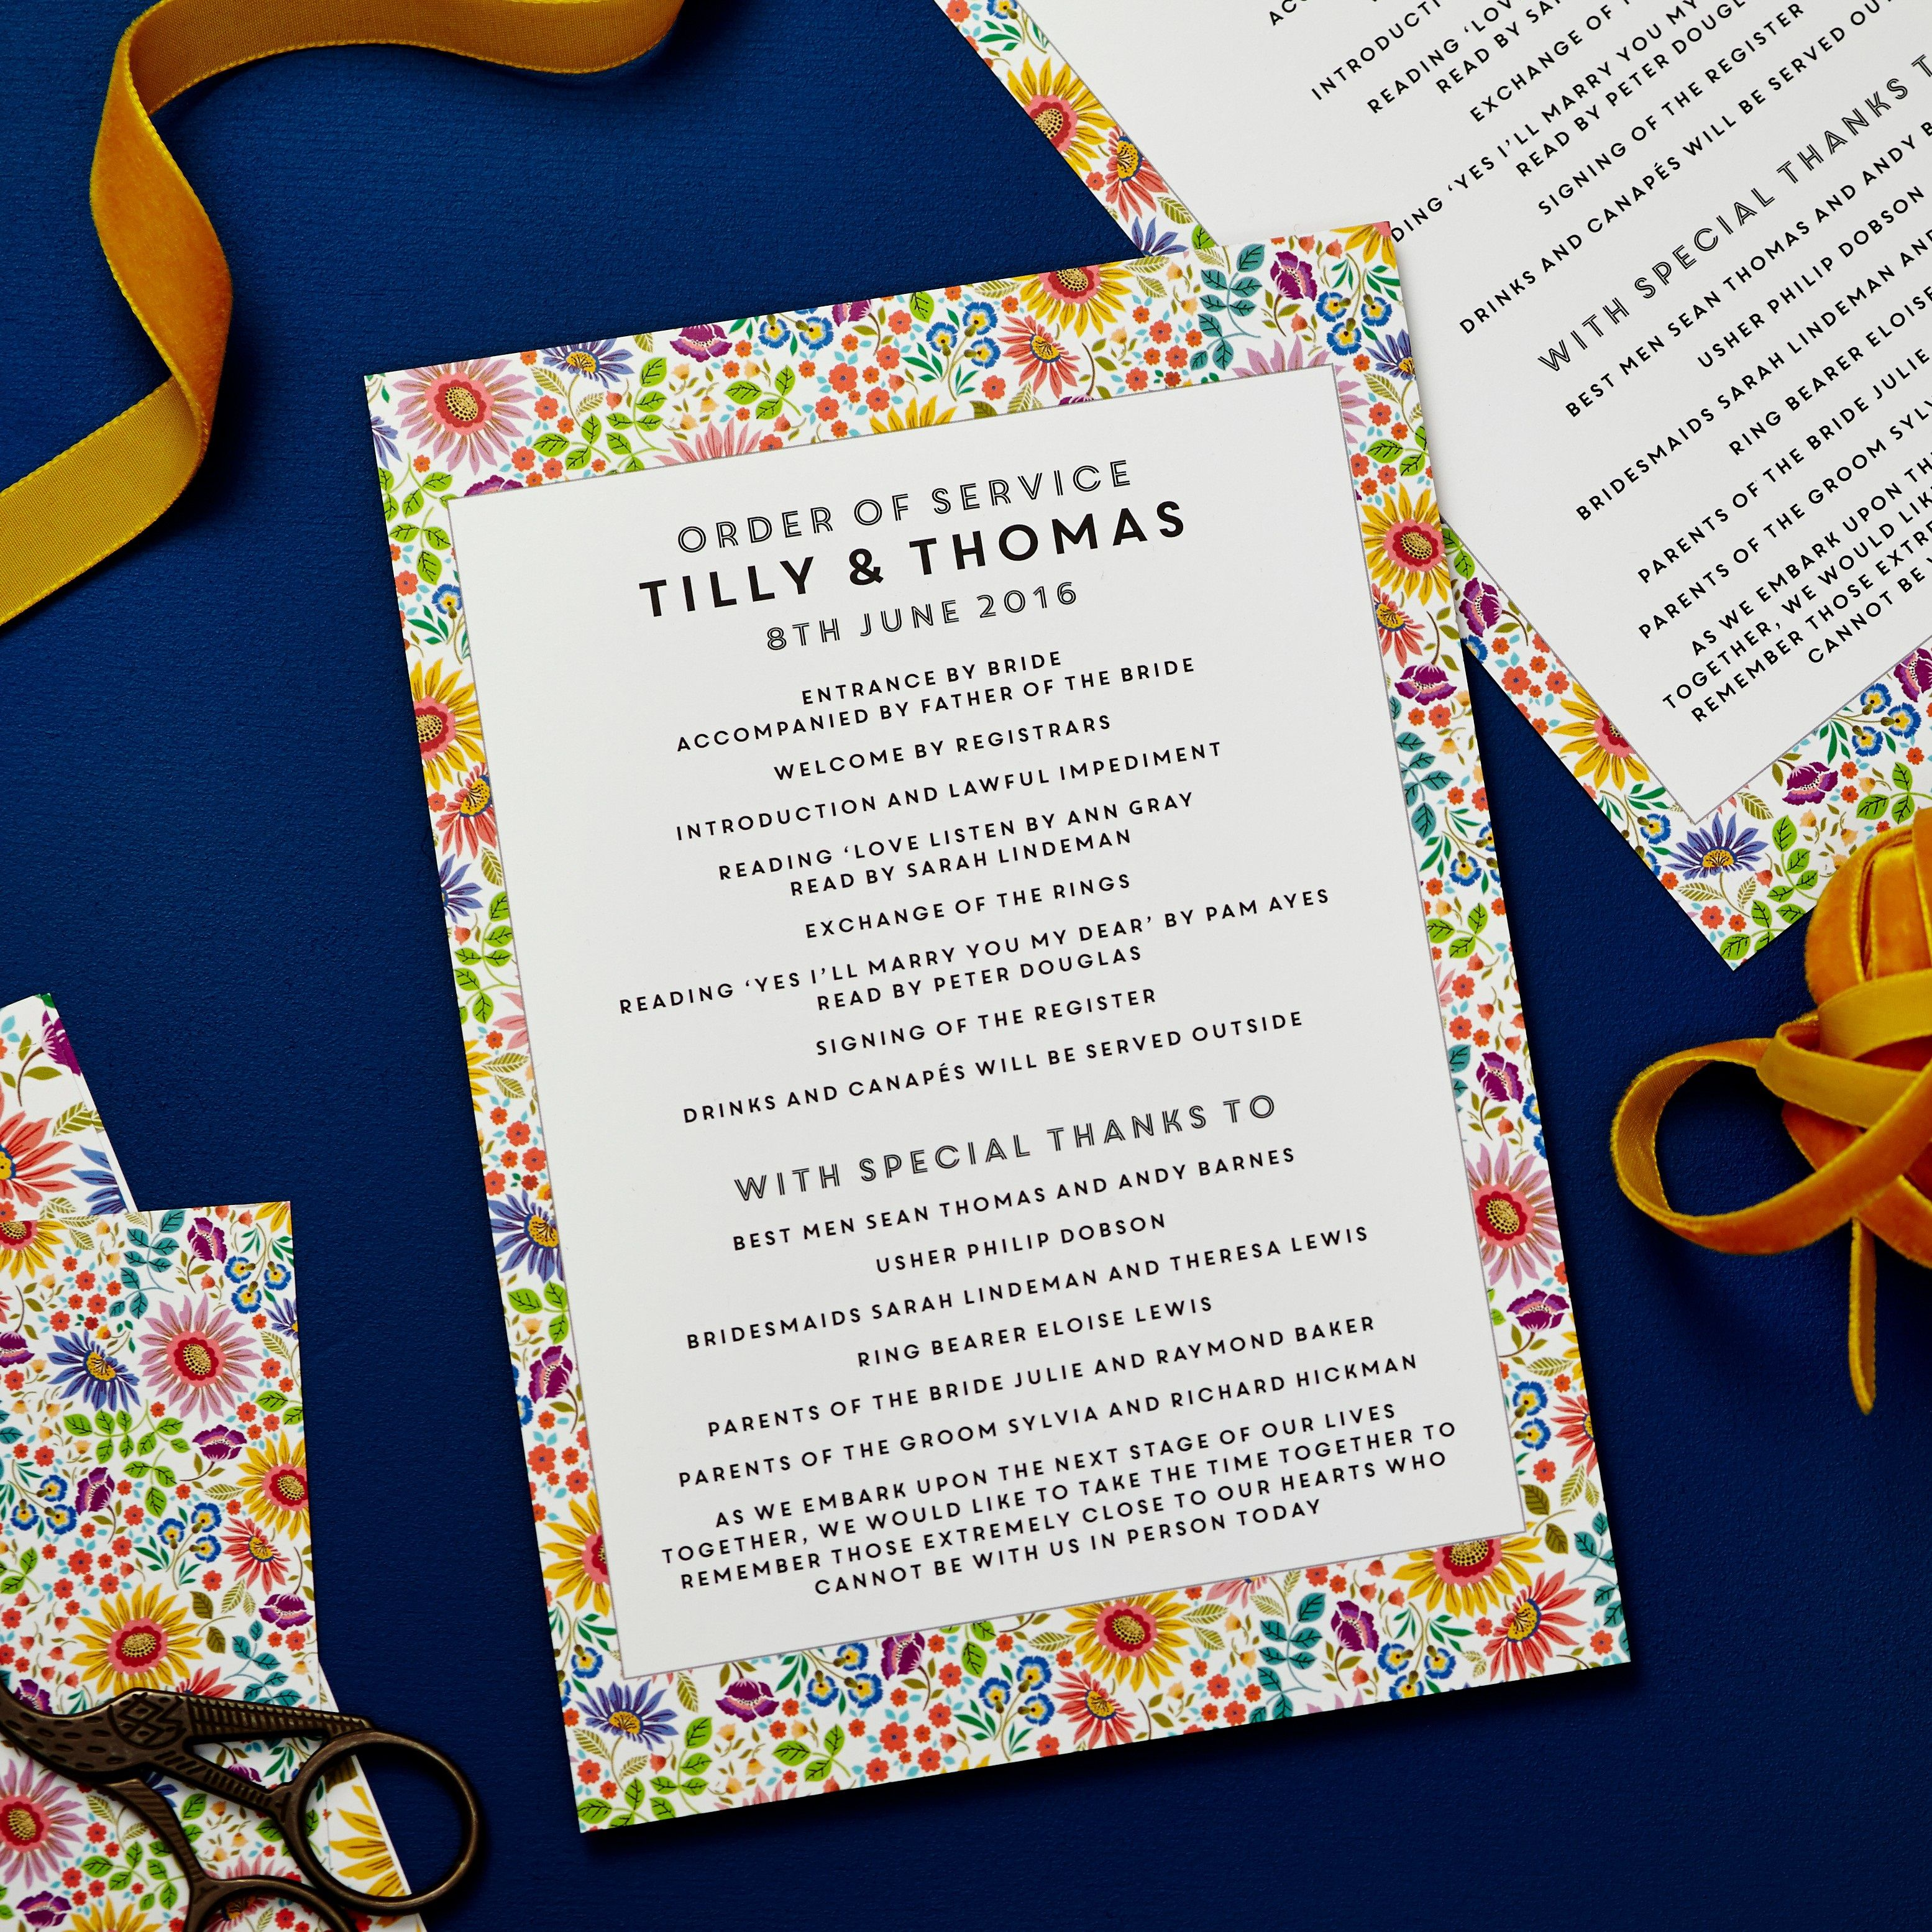 002 Remarkable Traditional Wedding Order Of Service Template Uk Image Full